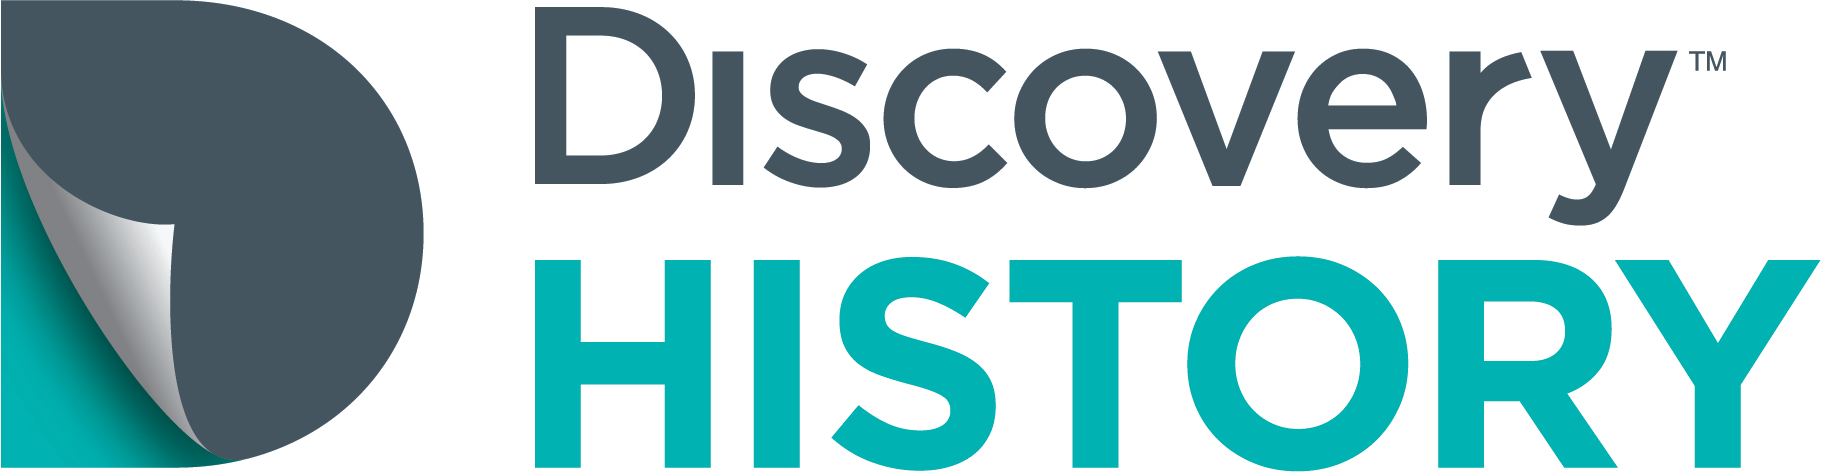 Discovery History - Logopedia, the logo and branding site